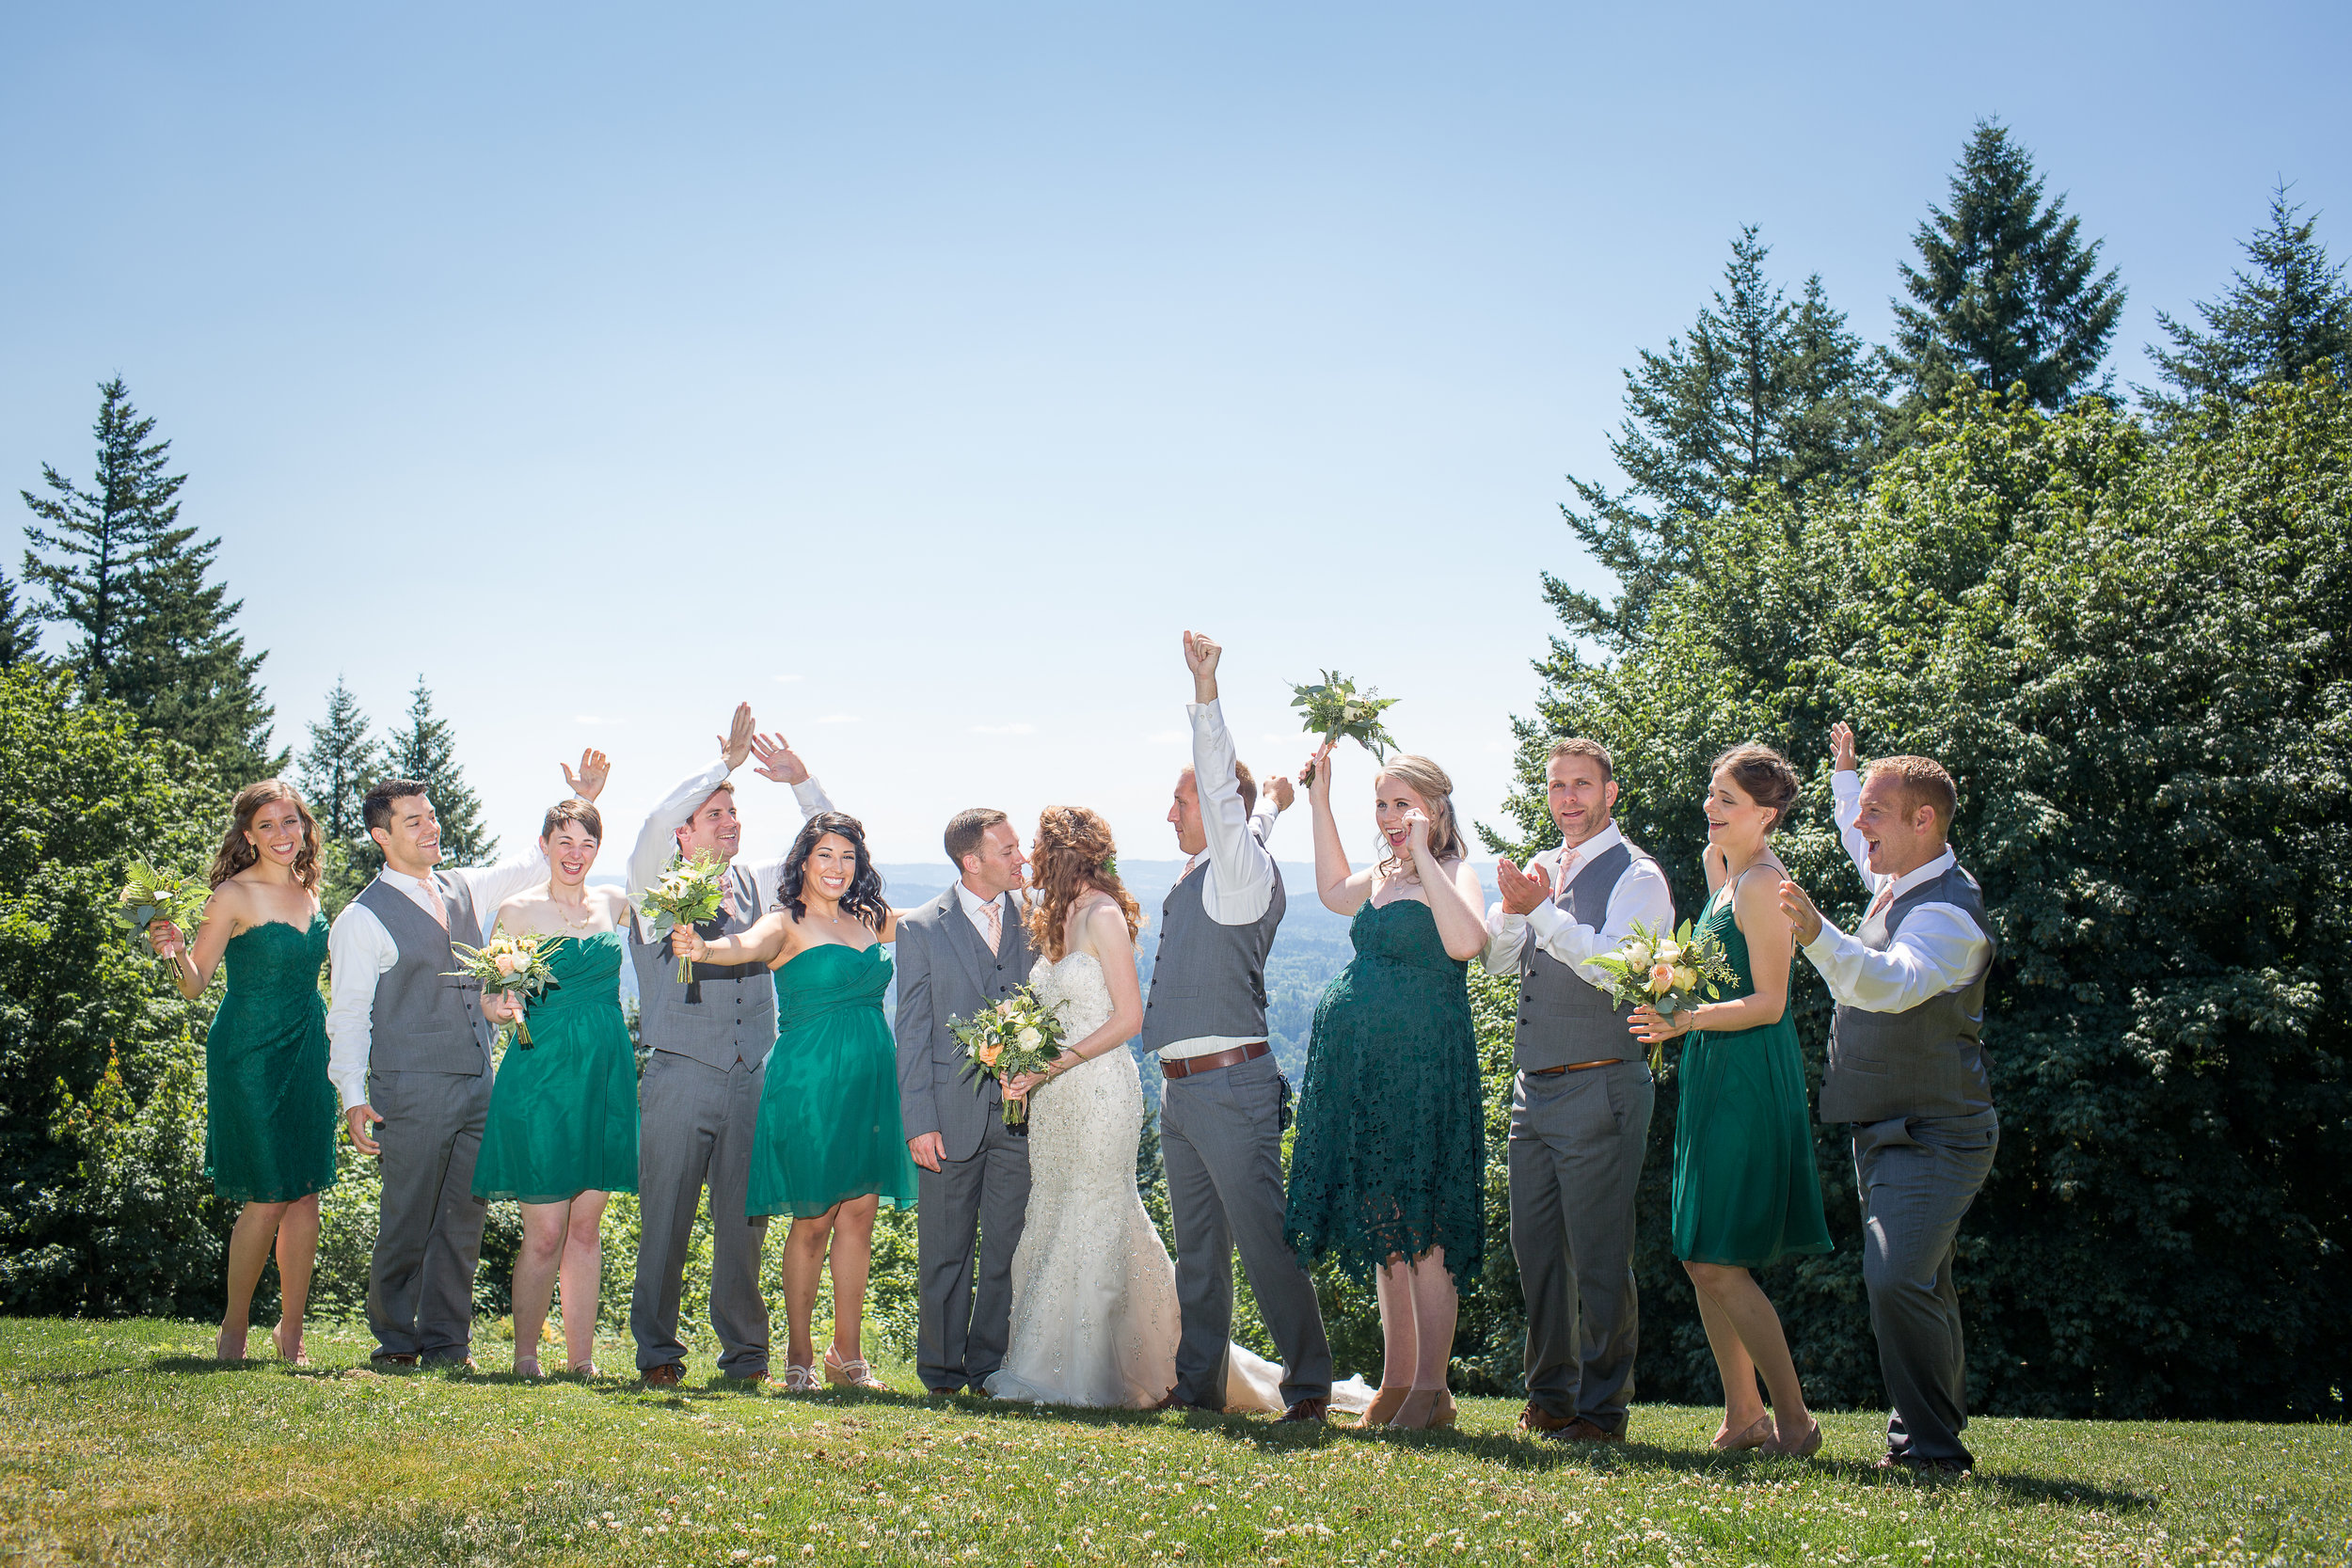 Bridalbliss.com | Portland Wedding | Oregon Event Planning and Design | Emily Hall Photographer